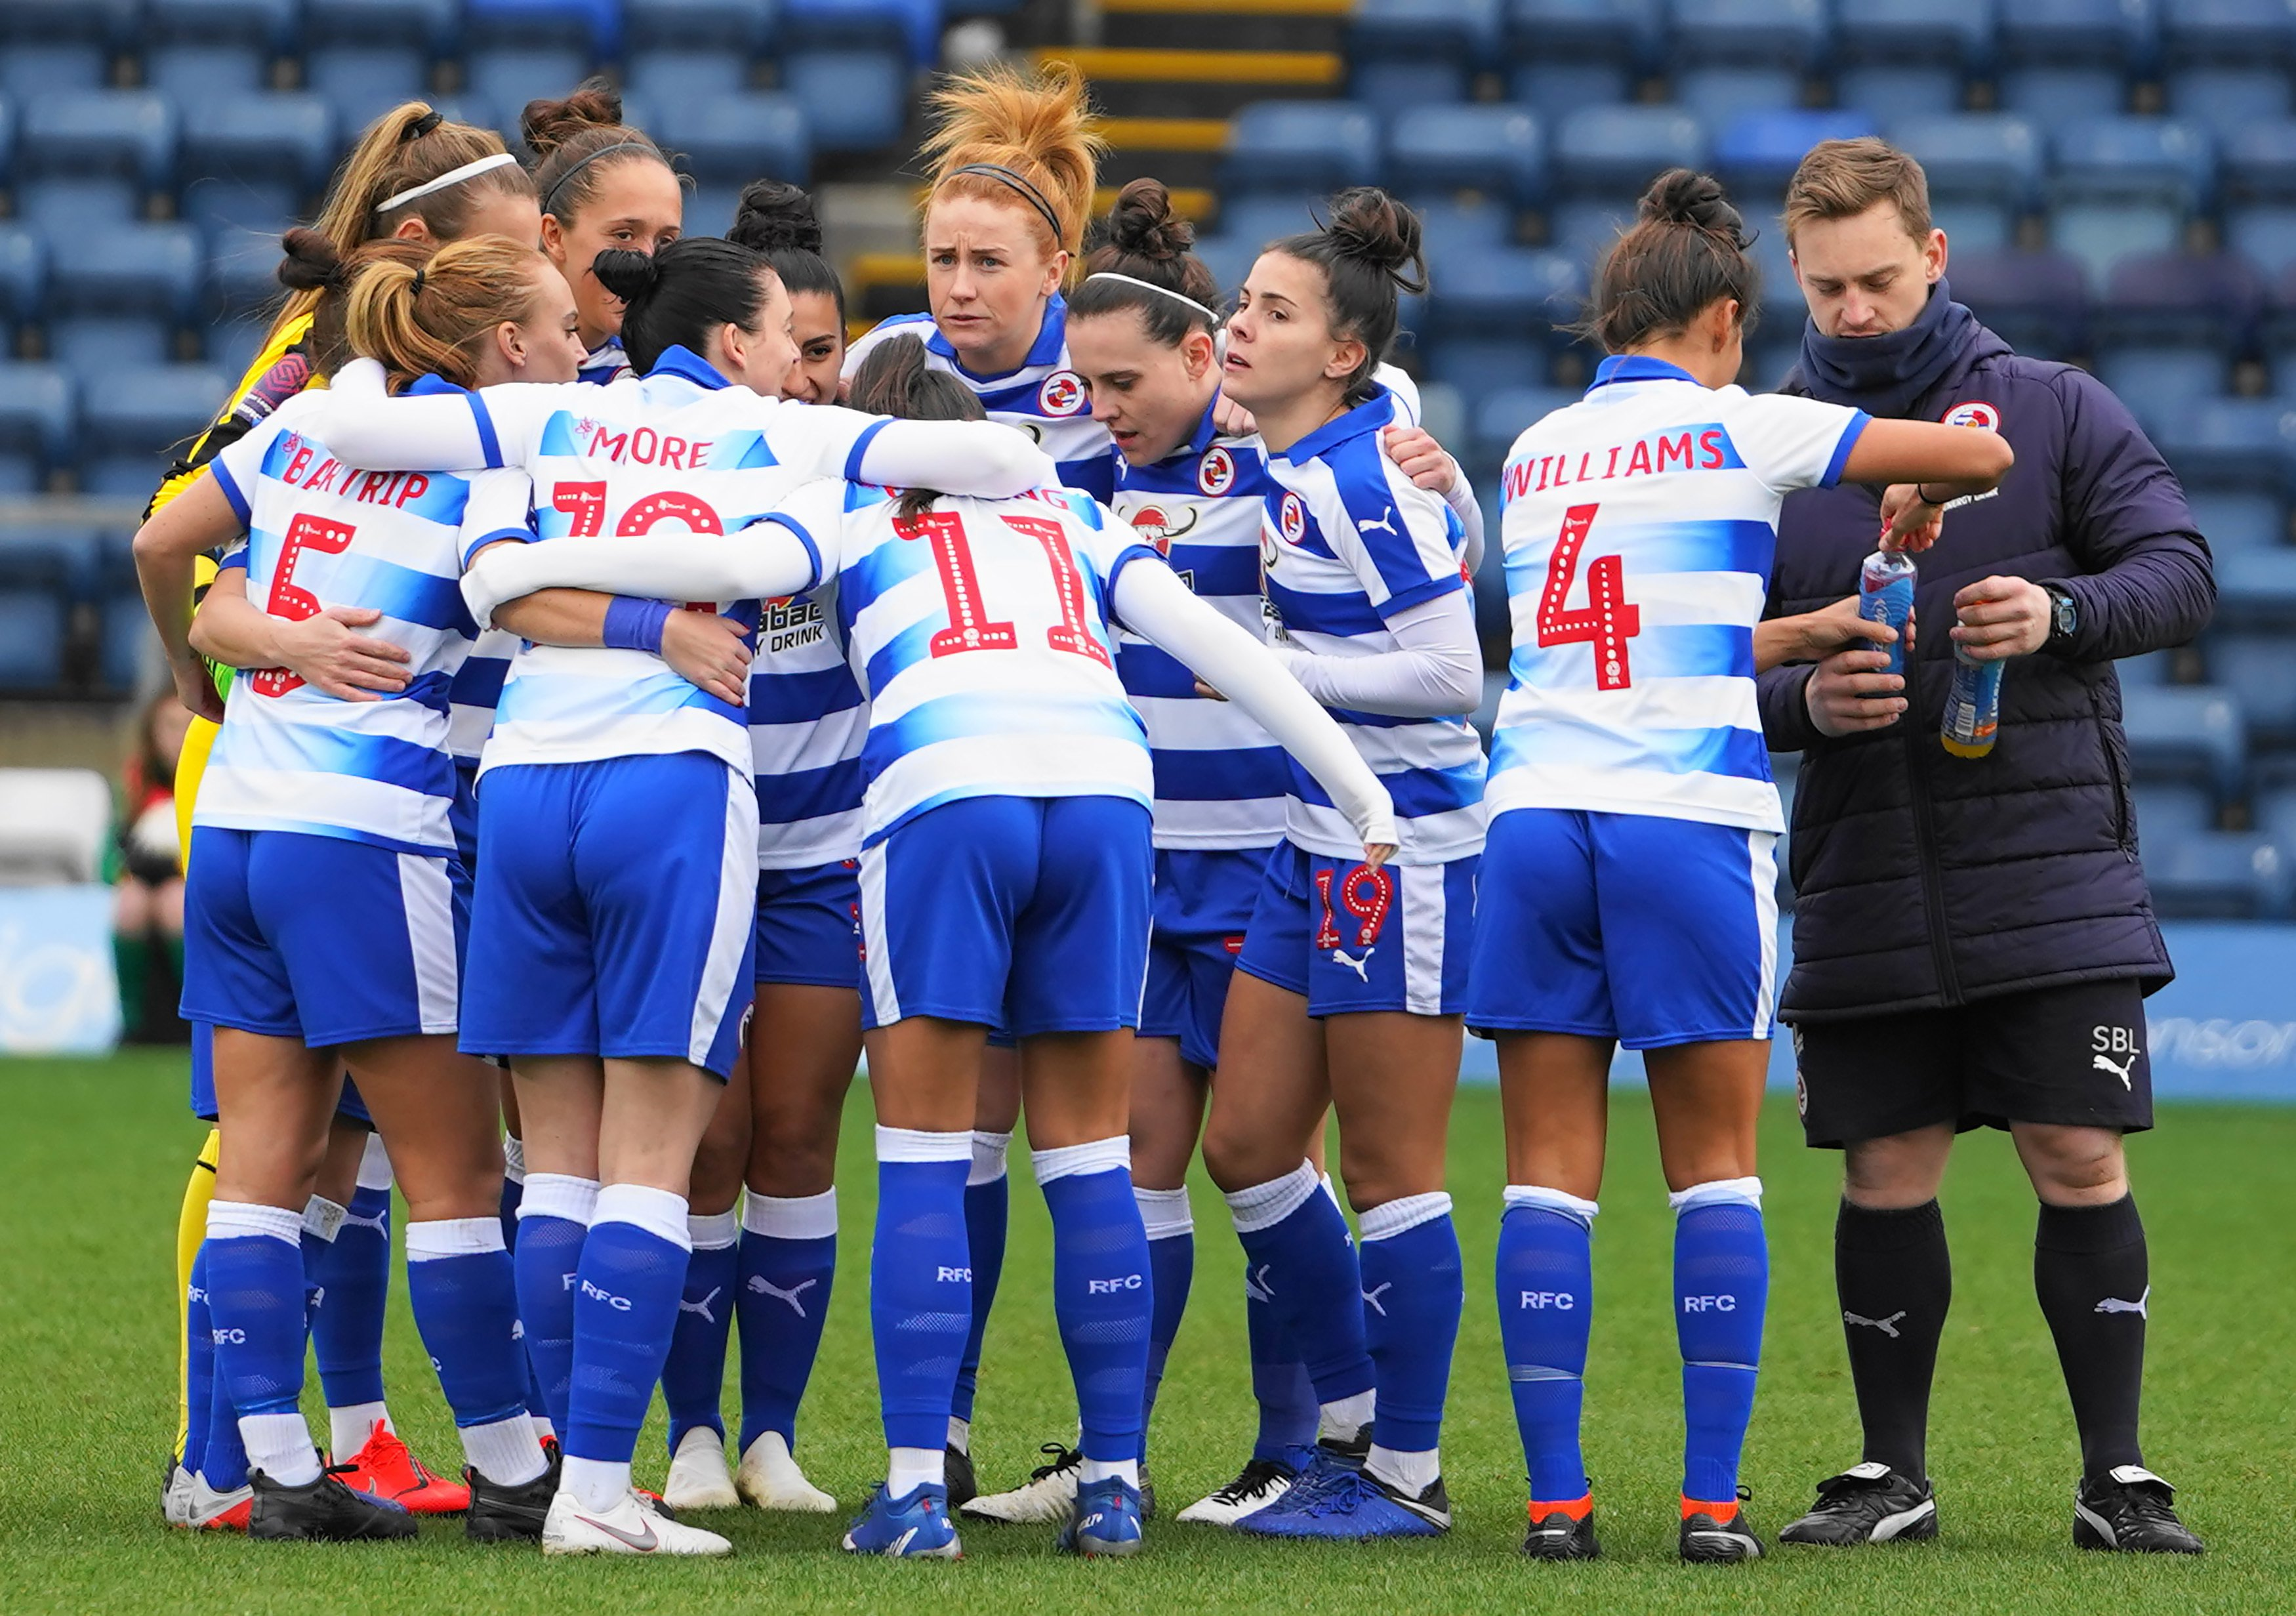 Reading, Manchester United and Arsenal all through to Women's League Cup quarter-finals